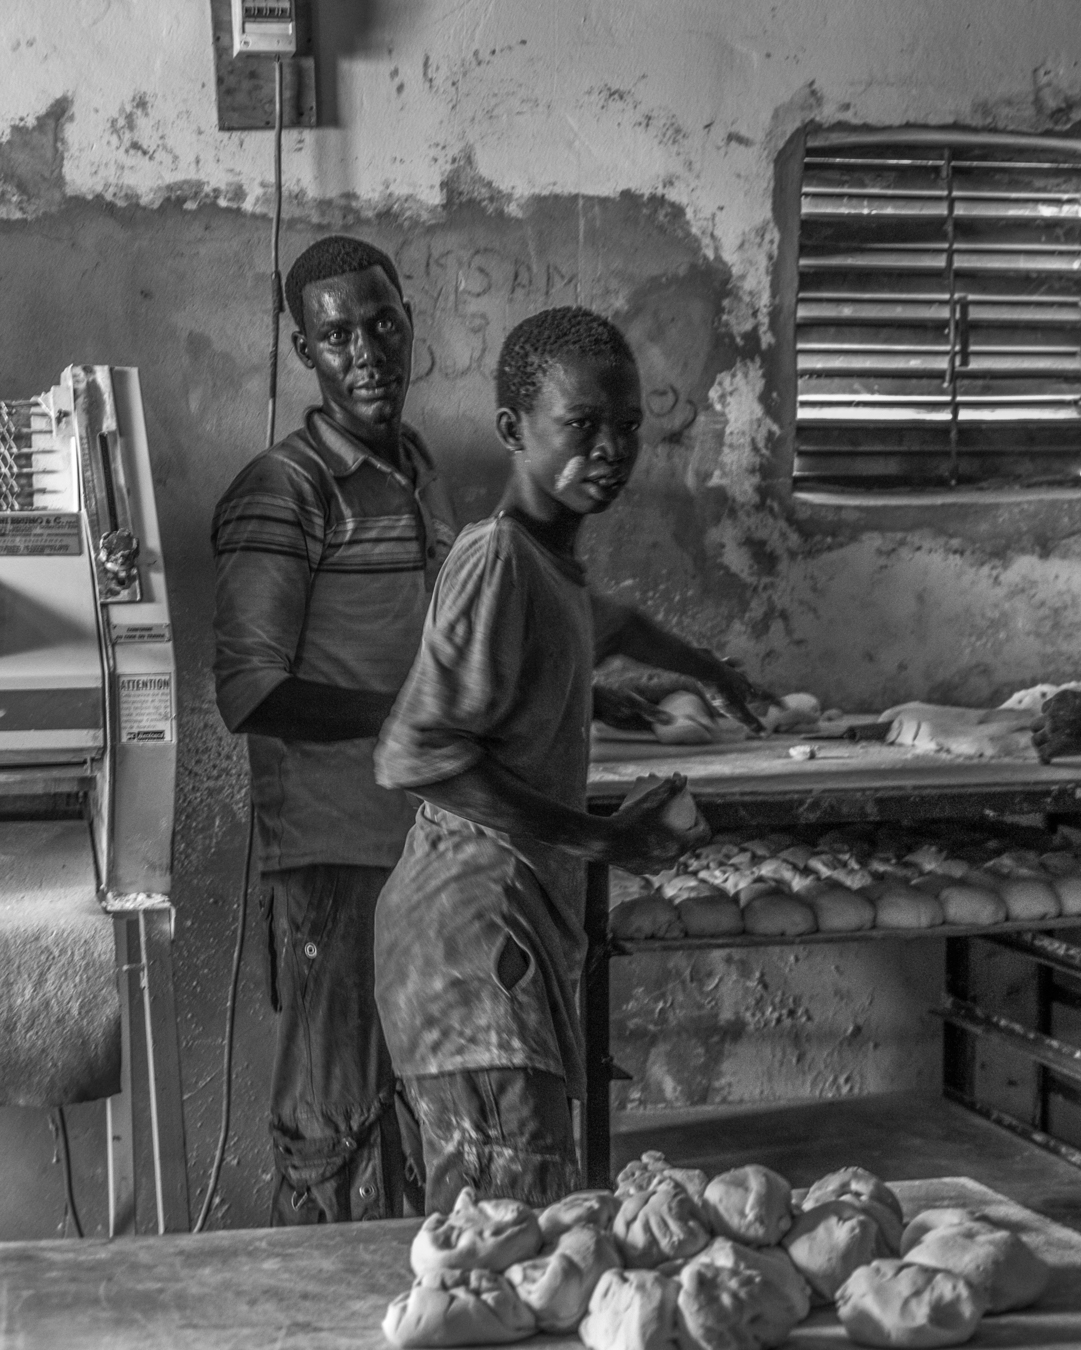 Village Bakery, N' Doul, 2016   The bakery was housed in a small industrial building, there were no counters and the bread was dispensed from boxes. The children who were working there ranged in age from maybe eight to twelve. Child labor is a continuing problem and one that I witnessed too often in my travels.